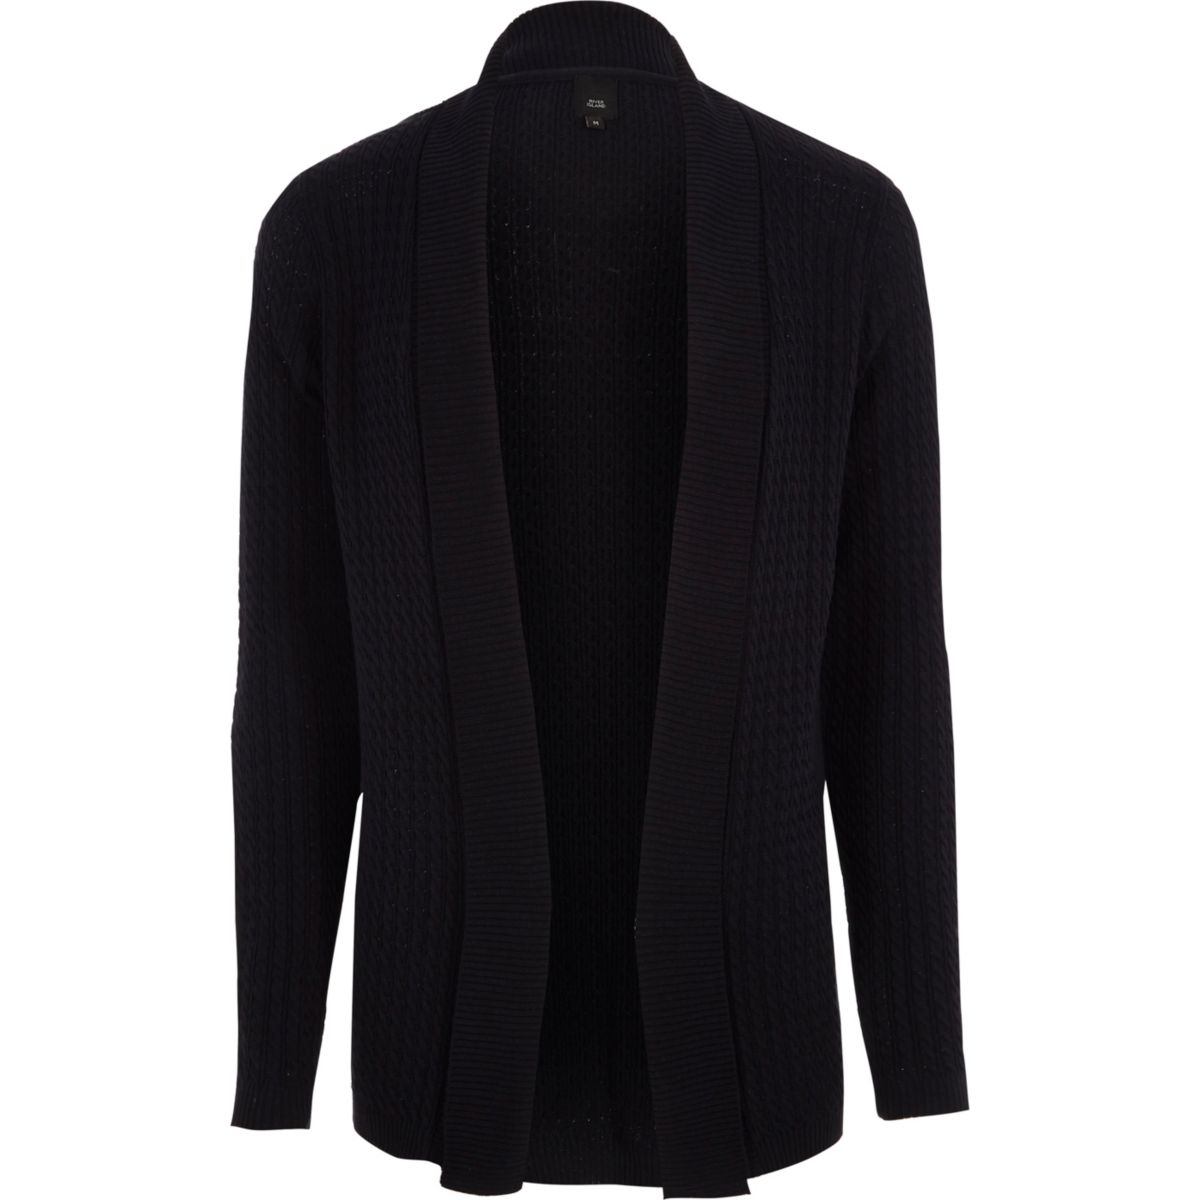 Navy cable knit open front cardigan